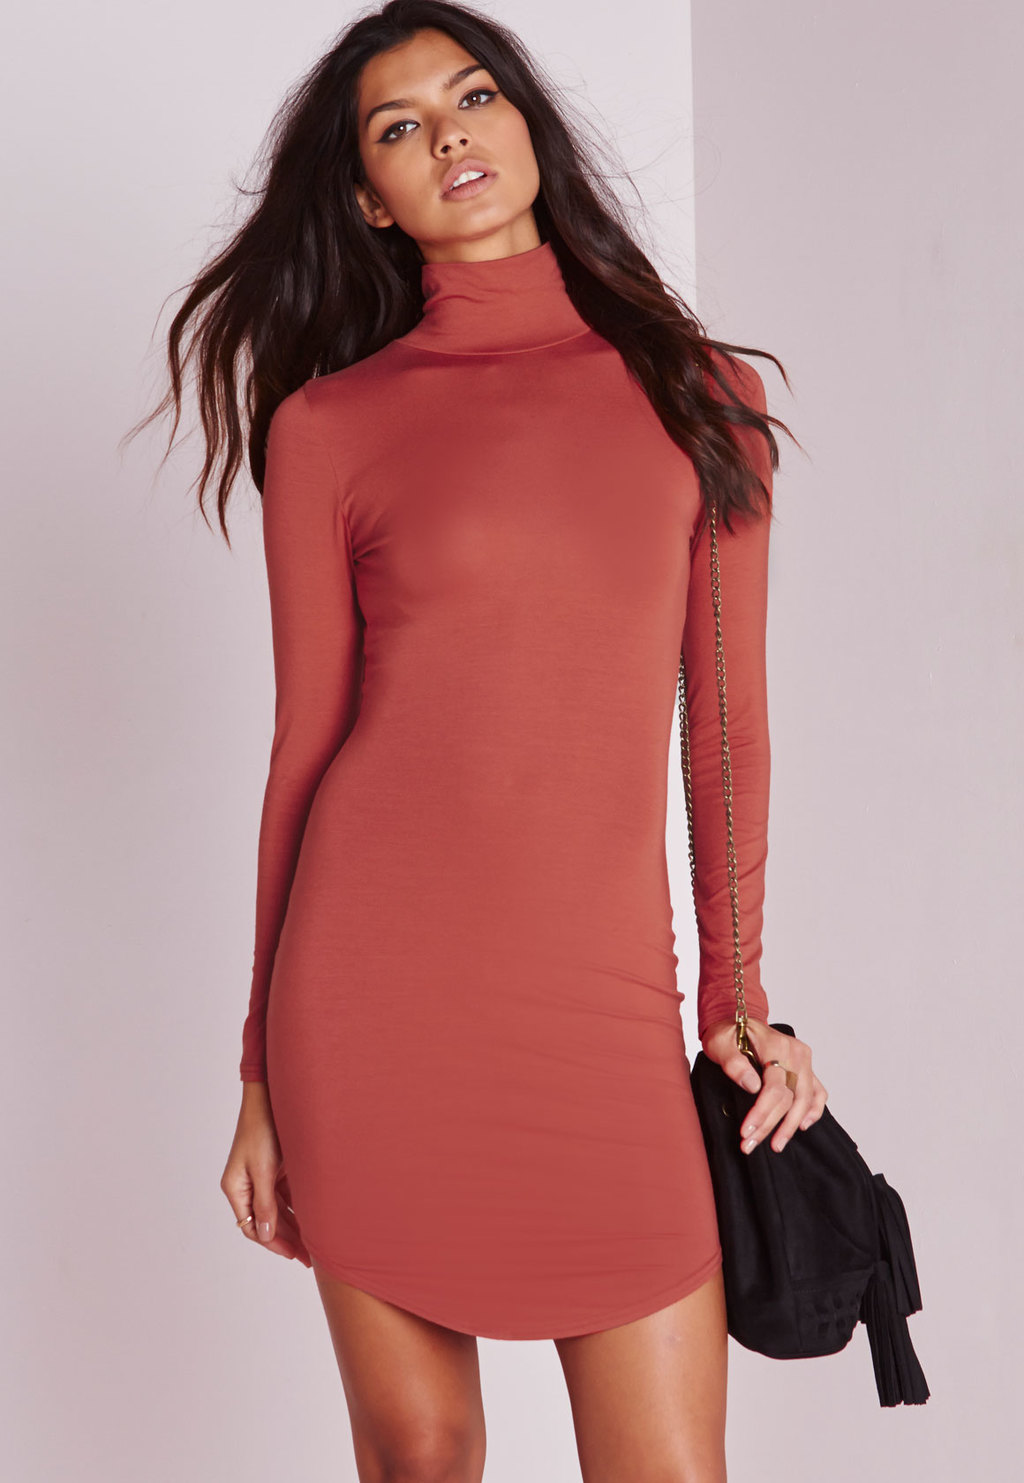 Petite Curve Hem Roll Neck Bodycon Dress Rust, Brown - length: mid thigh; fit: tight; pattern: plain; style: bodycon; neckline: roll neck; predominant colour: terracotta; occasions: evening; fibres: polyester/polyamide - stretch; sleeve length: long sleeve; sleeve style: standard; texture group: jersey - clingy; pattern type: fabric; season: a/w 2015; wardrobe: event